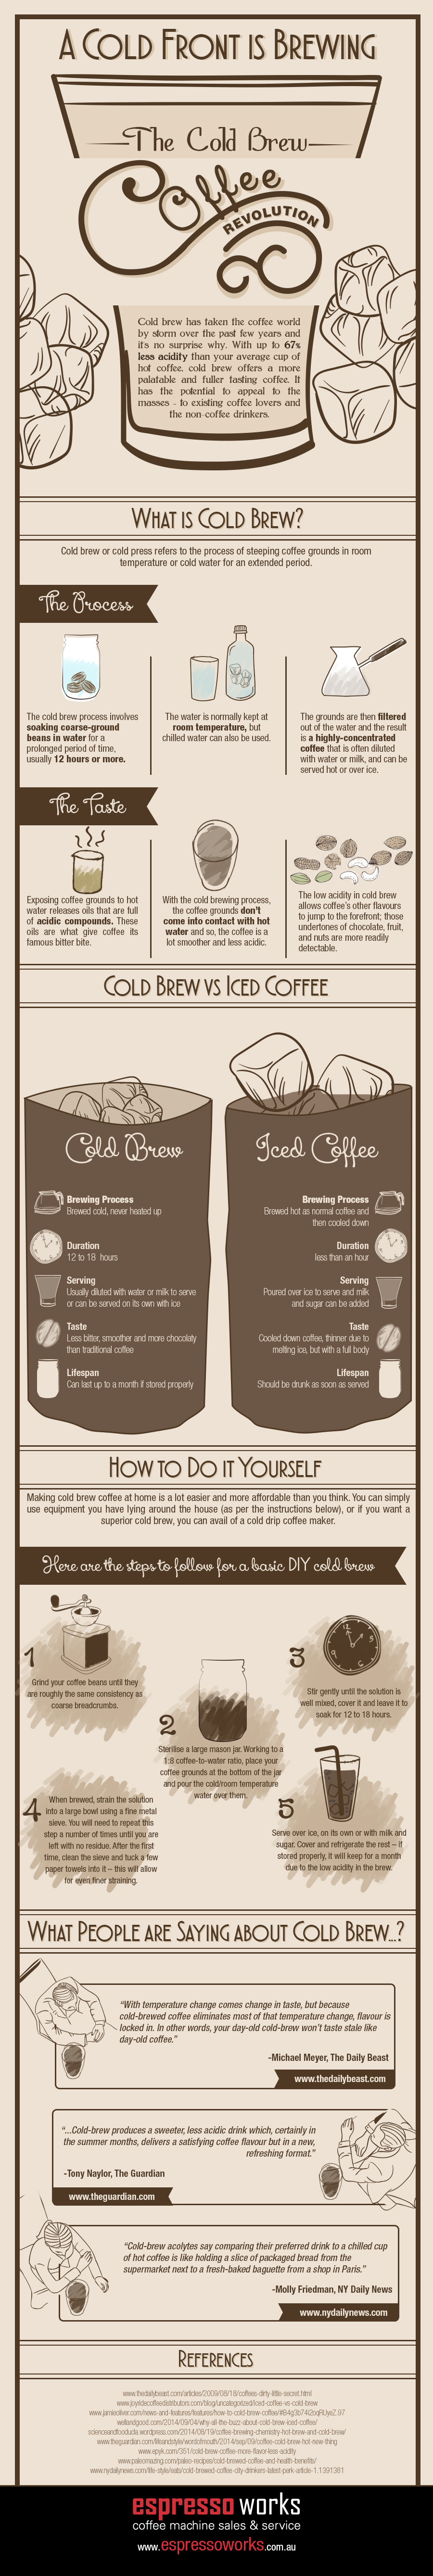 Cold-Brew-Coffee-Revolution-Infographic  (1)